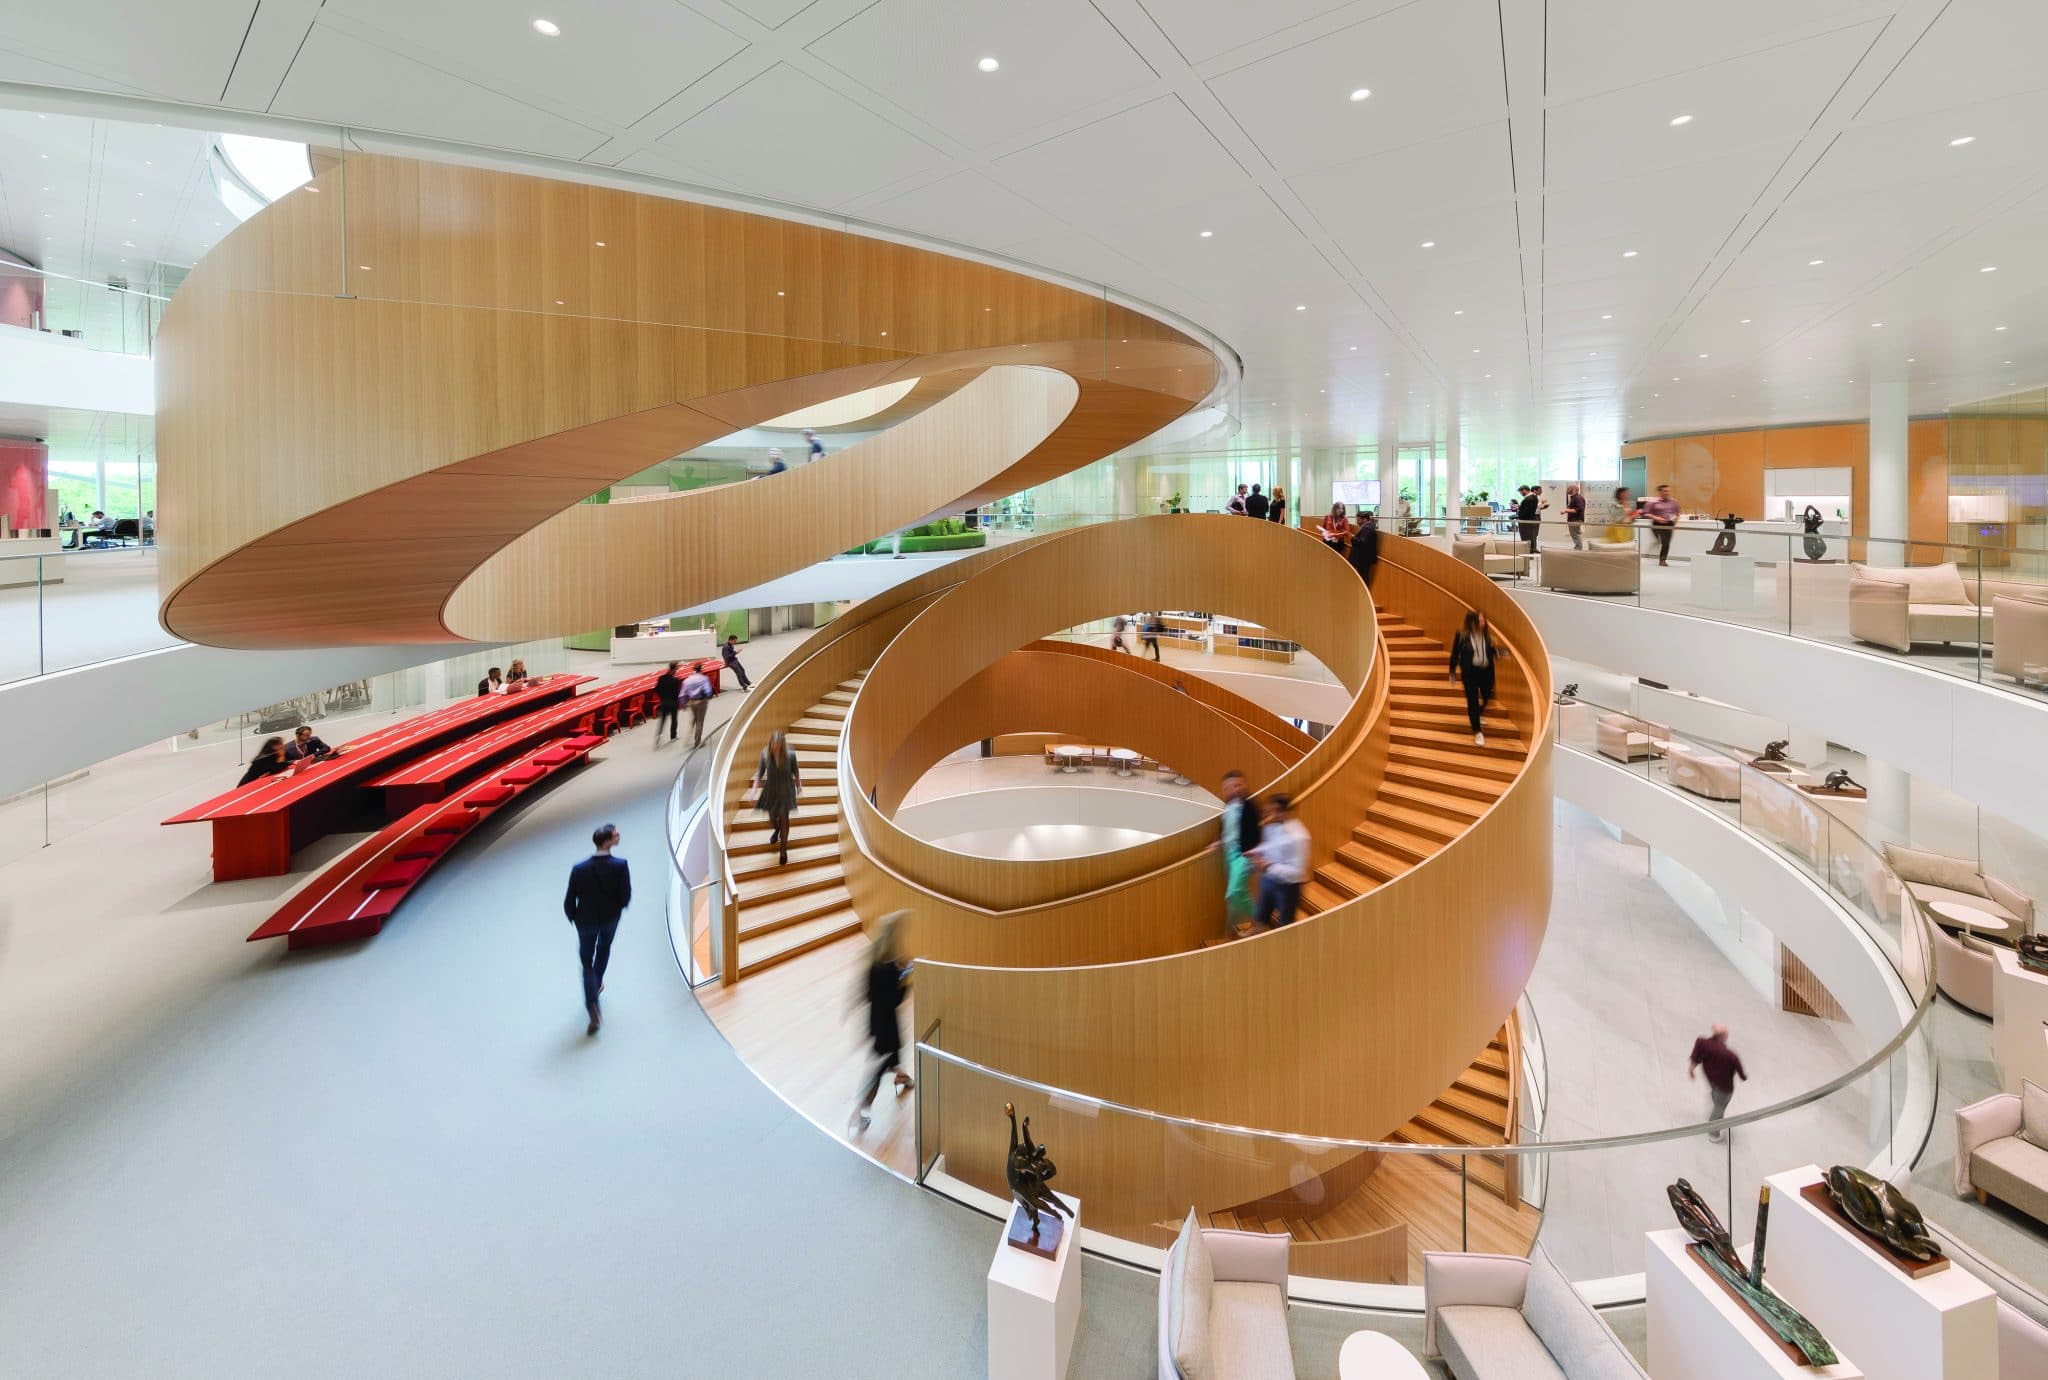 The Unity Staircase at 3XN's IOC headquarters in Lausanne